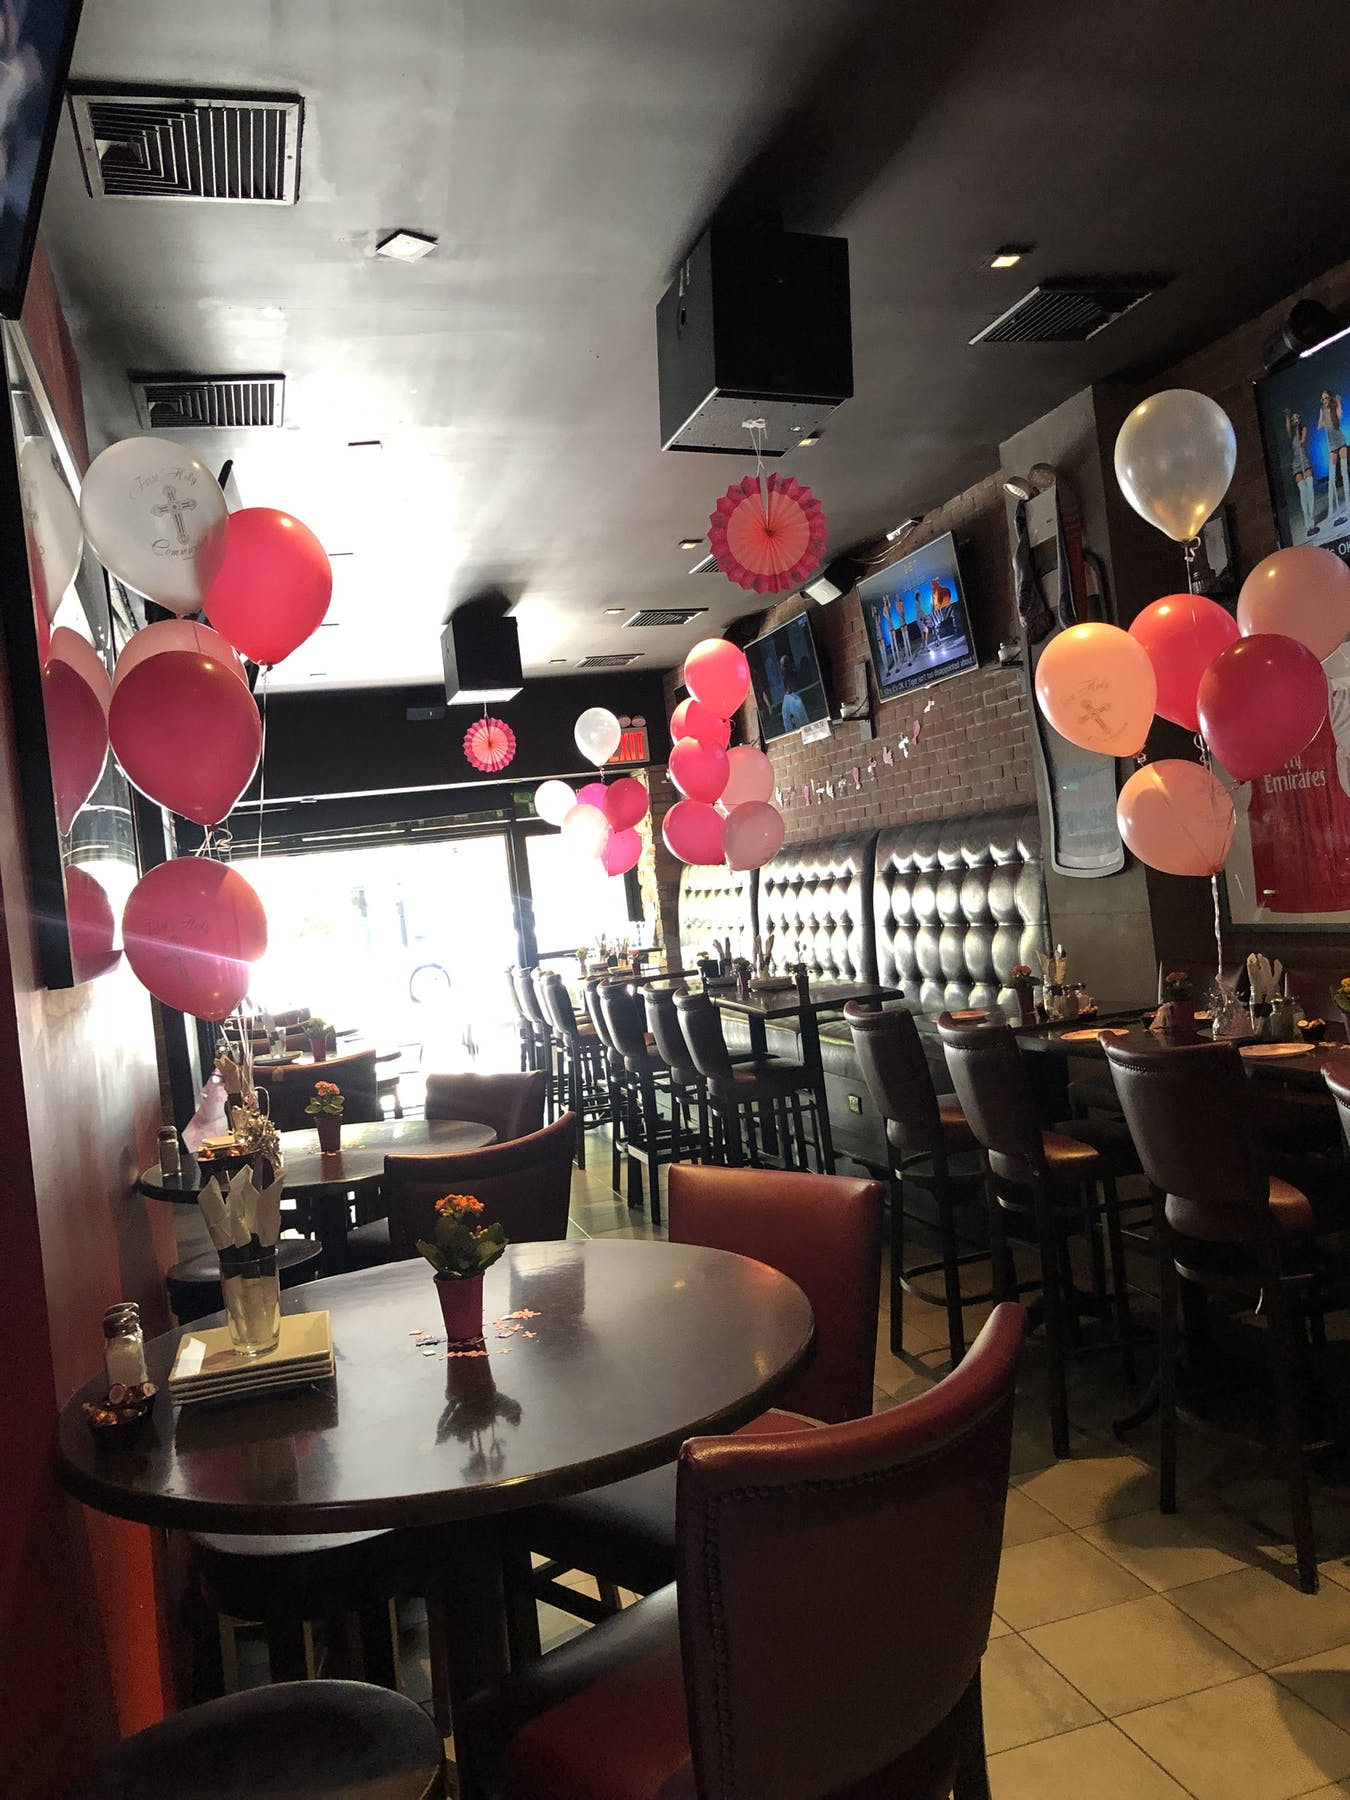 indoors decorated with balloons